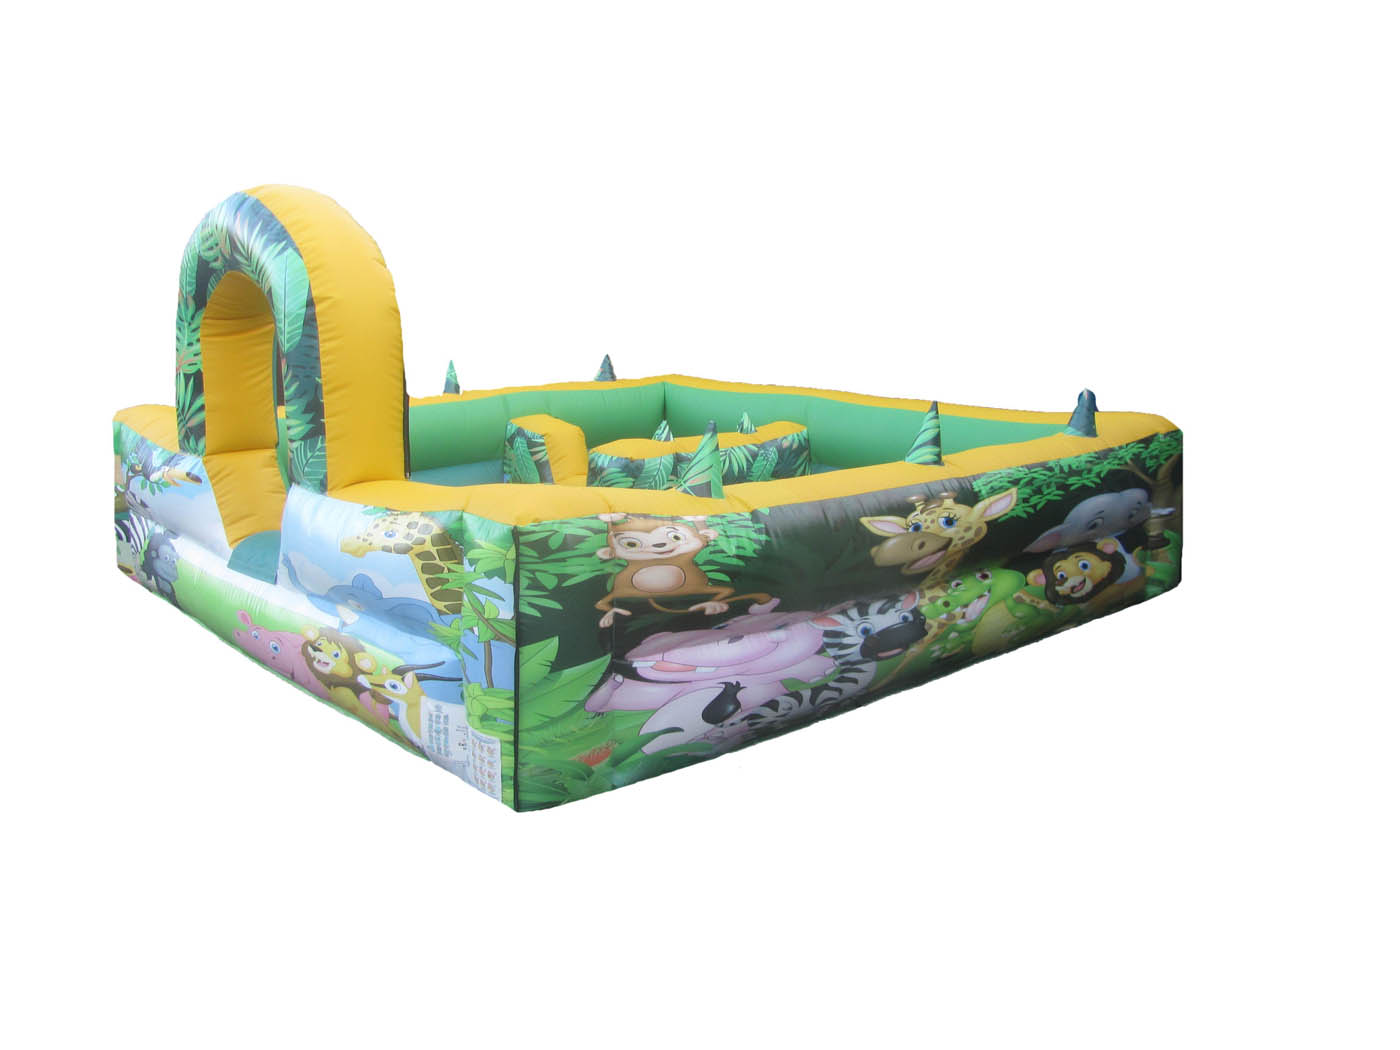 Inflatable Play Park for Toddlers with Jungle themed Artwork